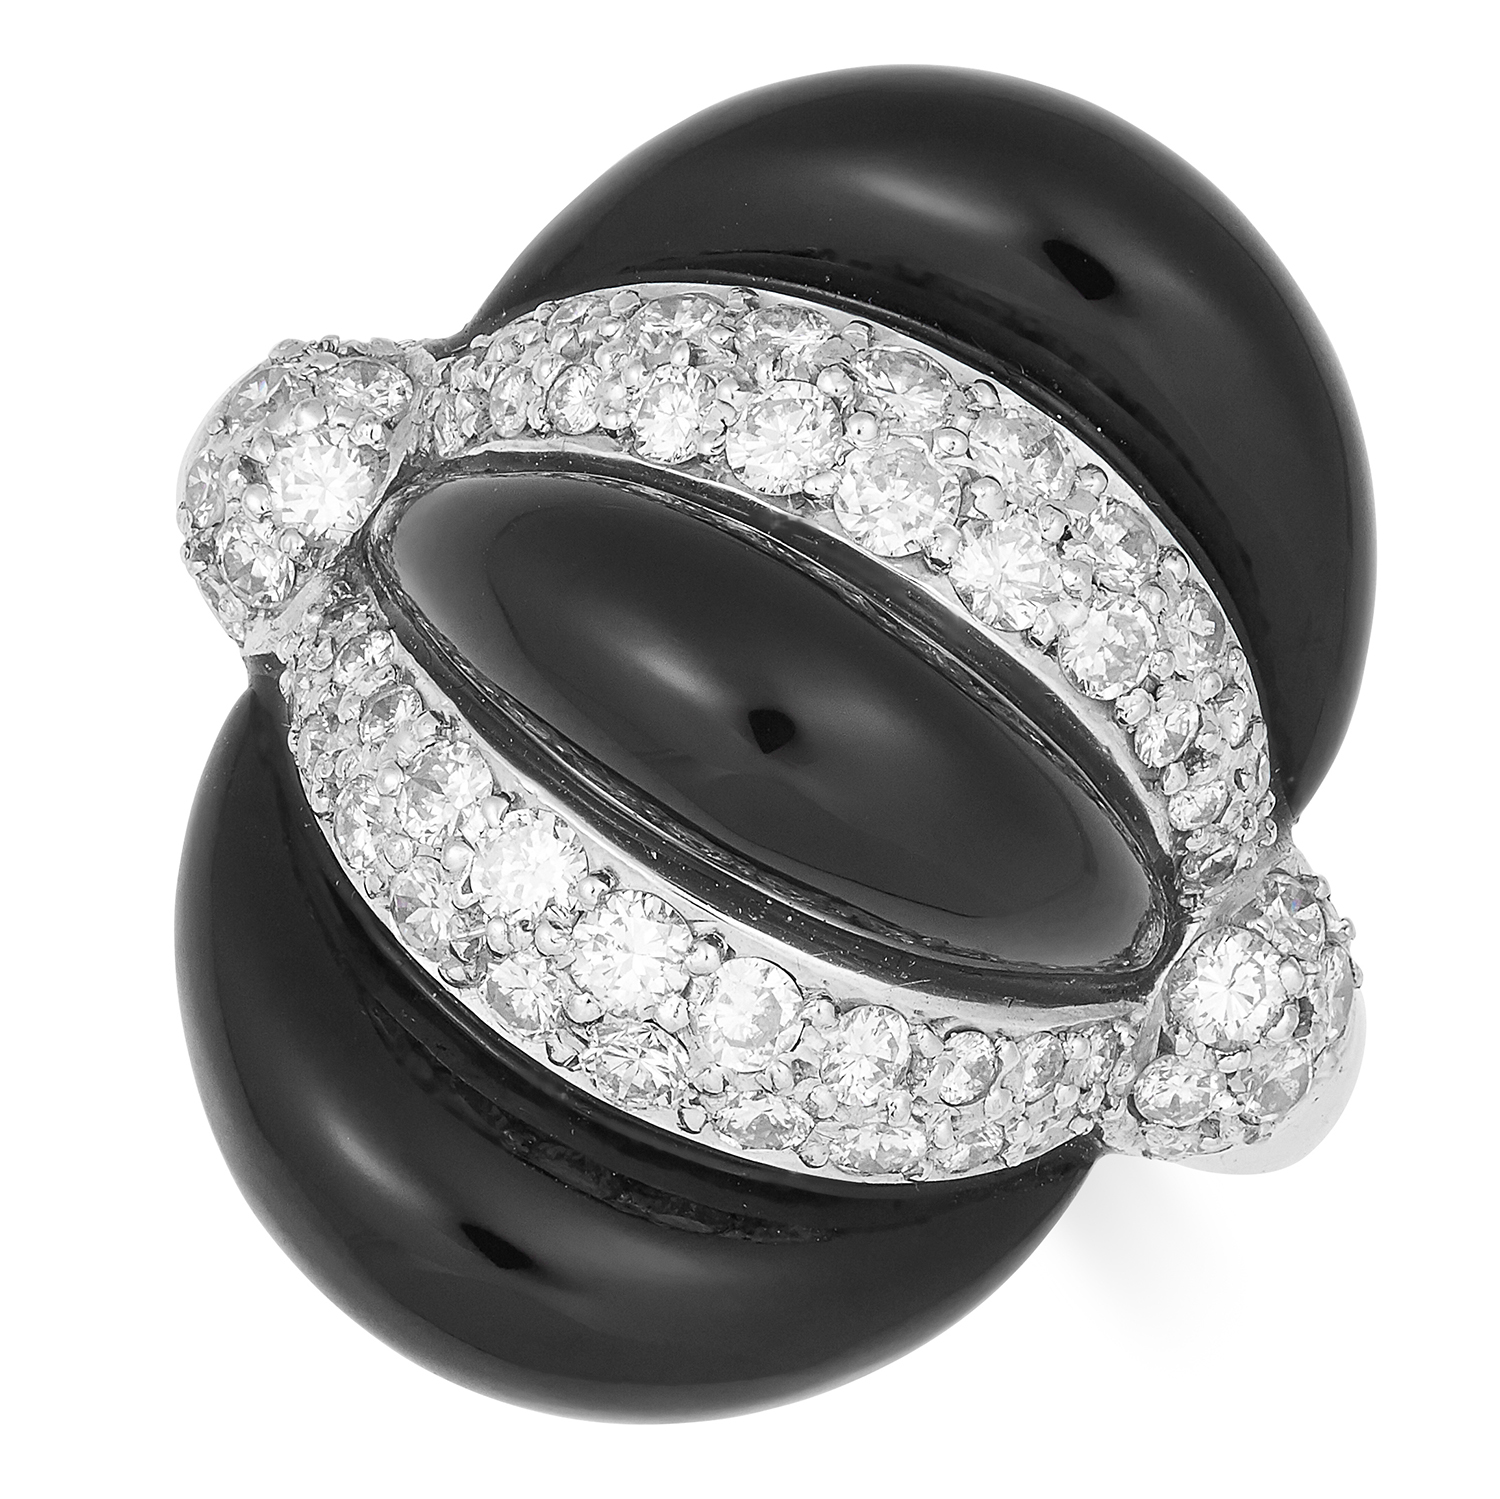 Los 52 - ONYX AND DIAMOND RING set with alternating round cut diamonds and polished onyx, size N / 7, 9.9g.